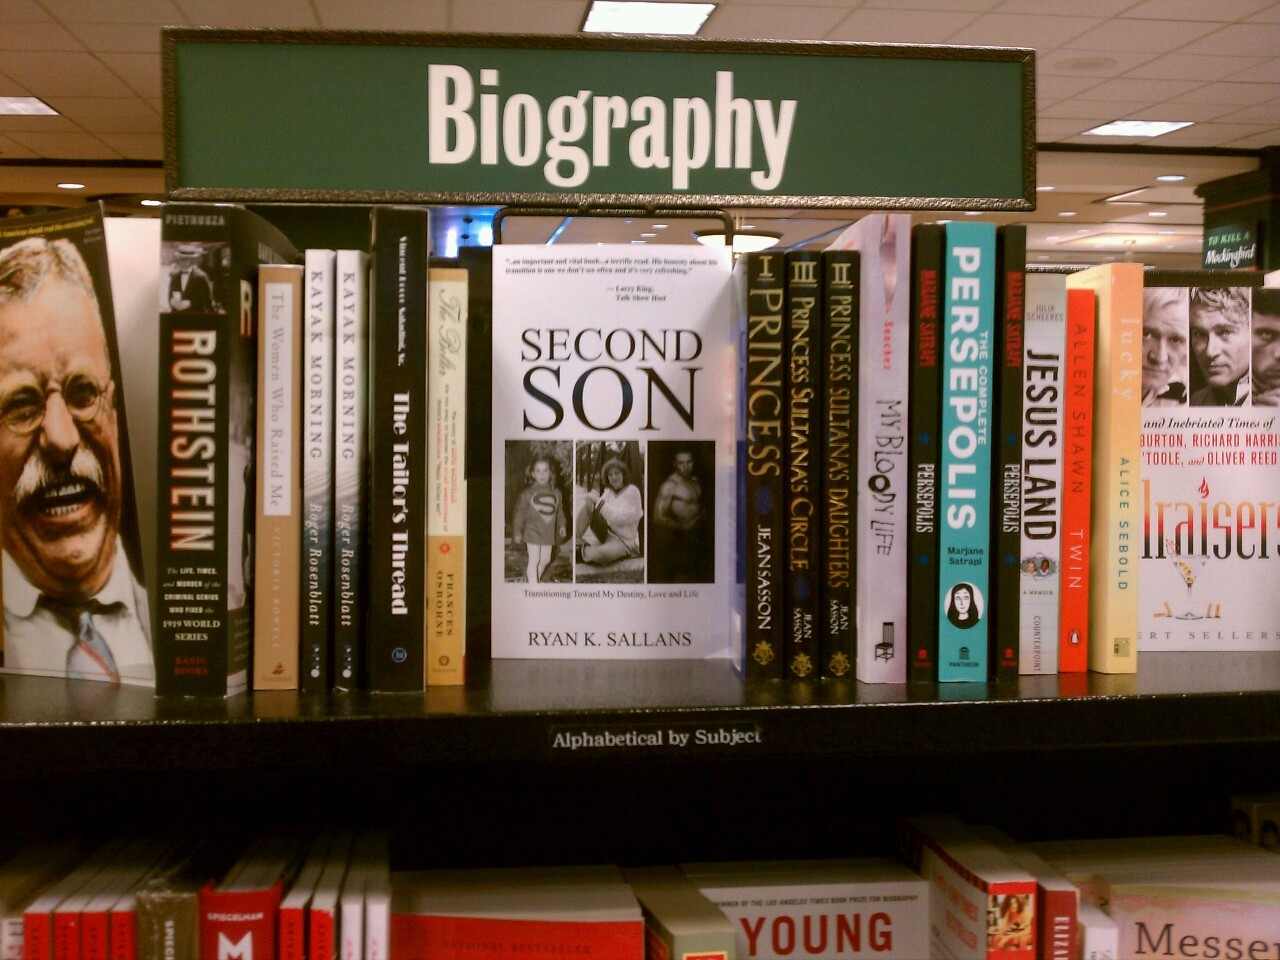 ryansallans:  Seeing a book written by me on the shelves of a Barnes & Noble was something I used to only dream about. Just like transitioning, if you put your passion toward something, and open yourself up to a lot of unknowns, things can happen.